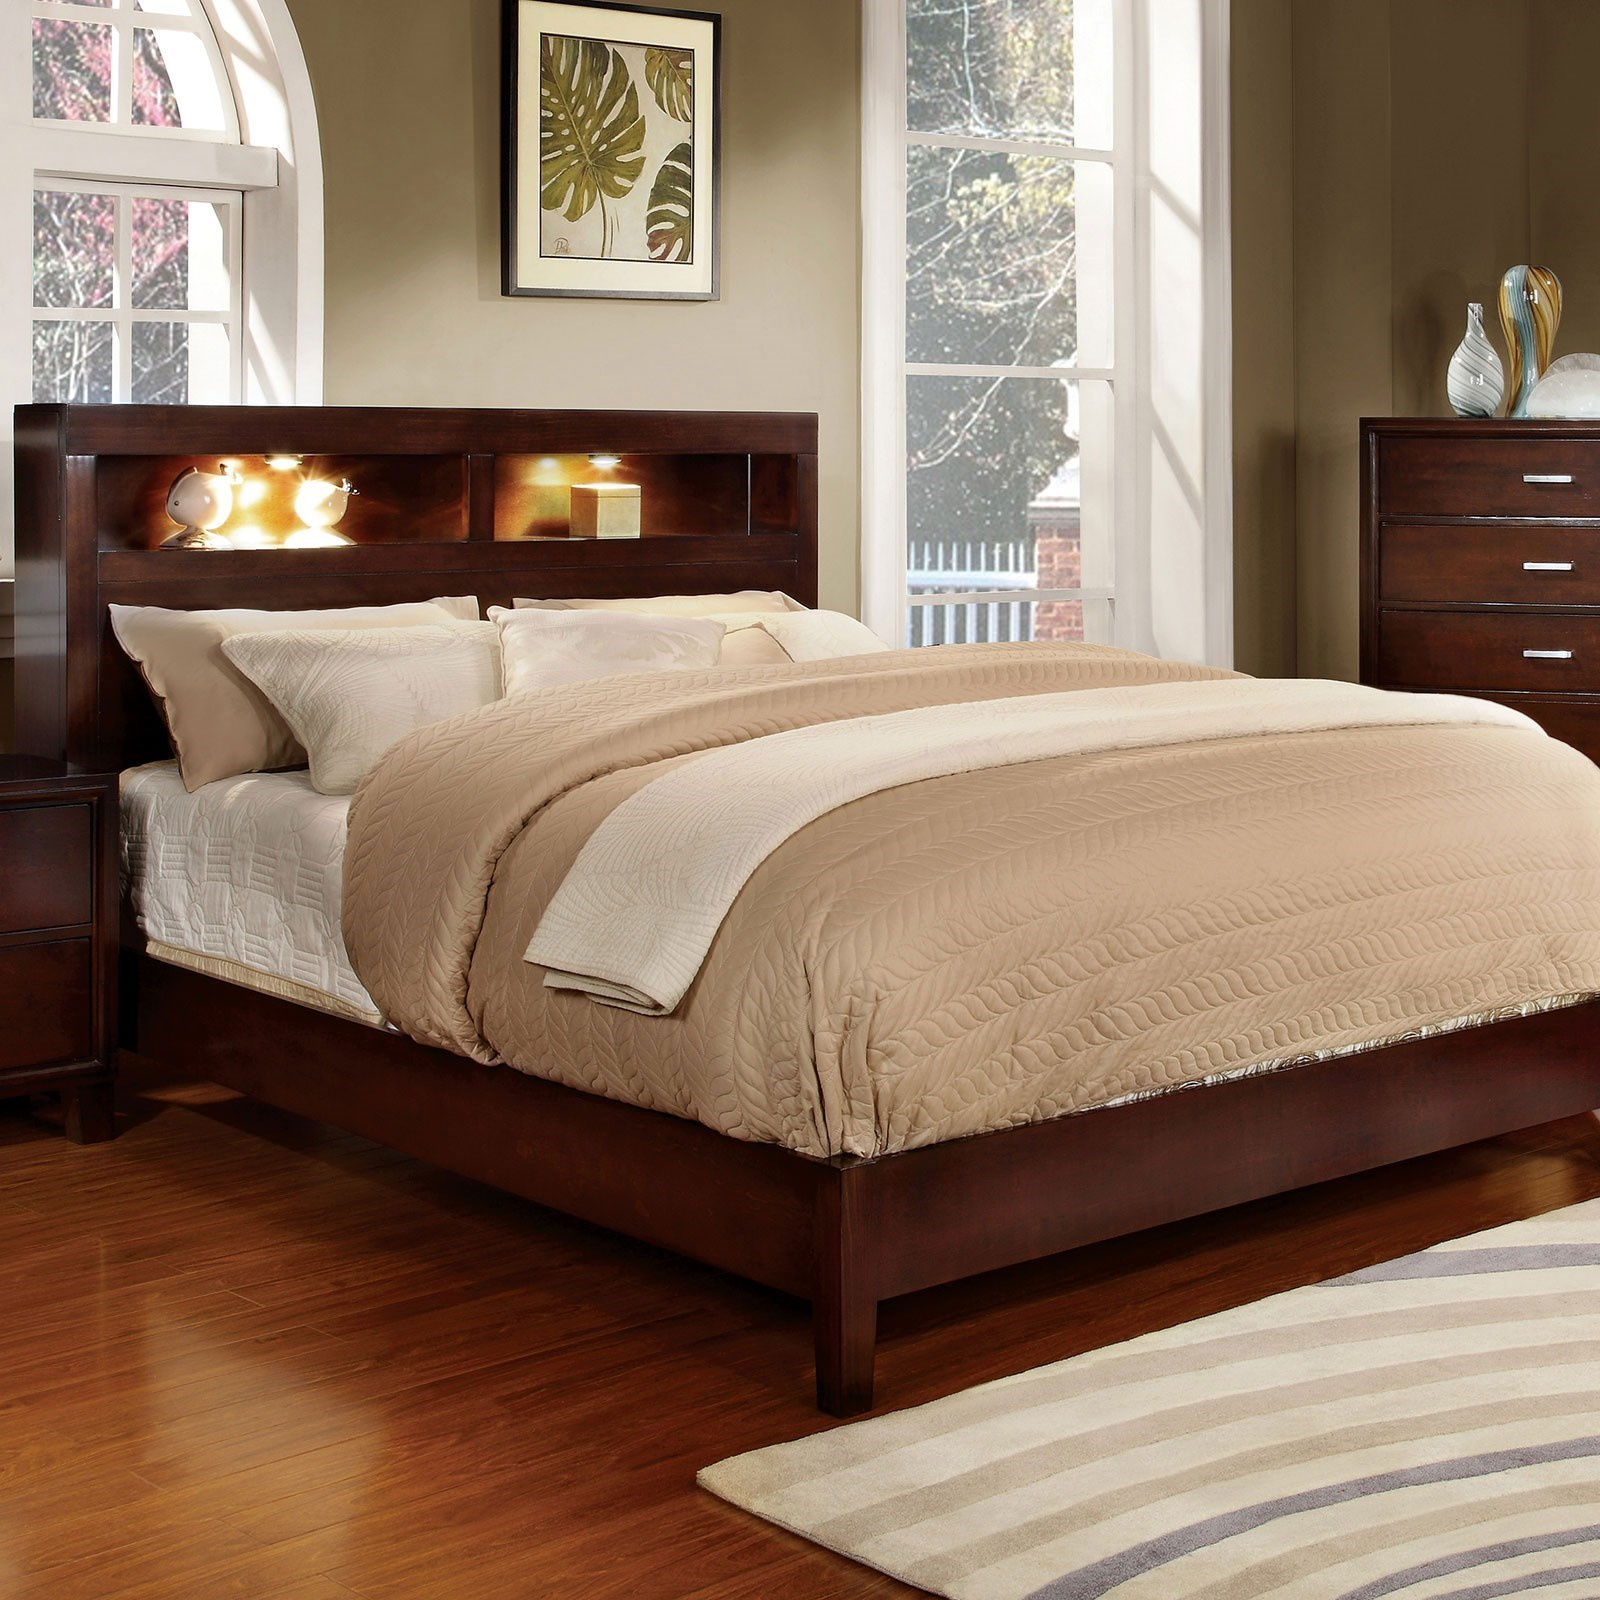 Gerico I Queen Bookcase Bed at Household Furniture